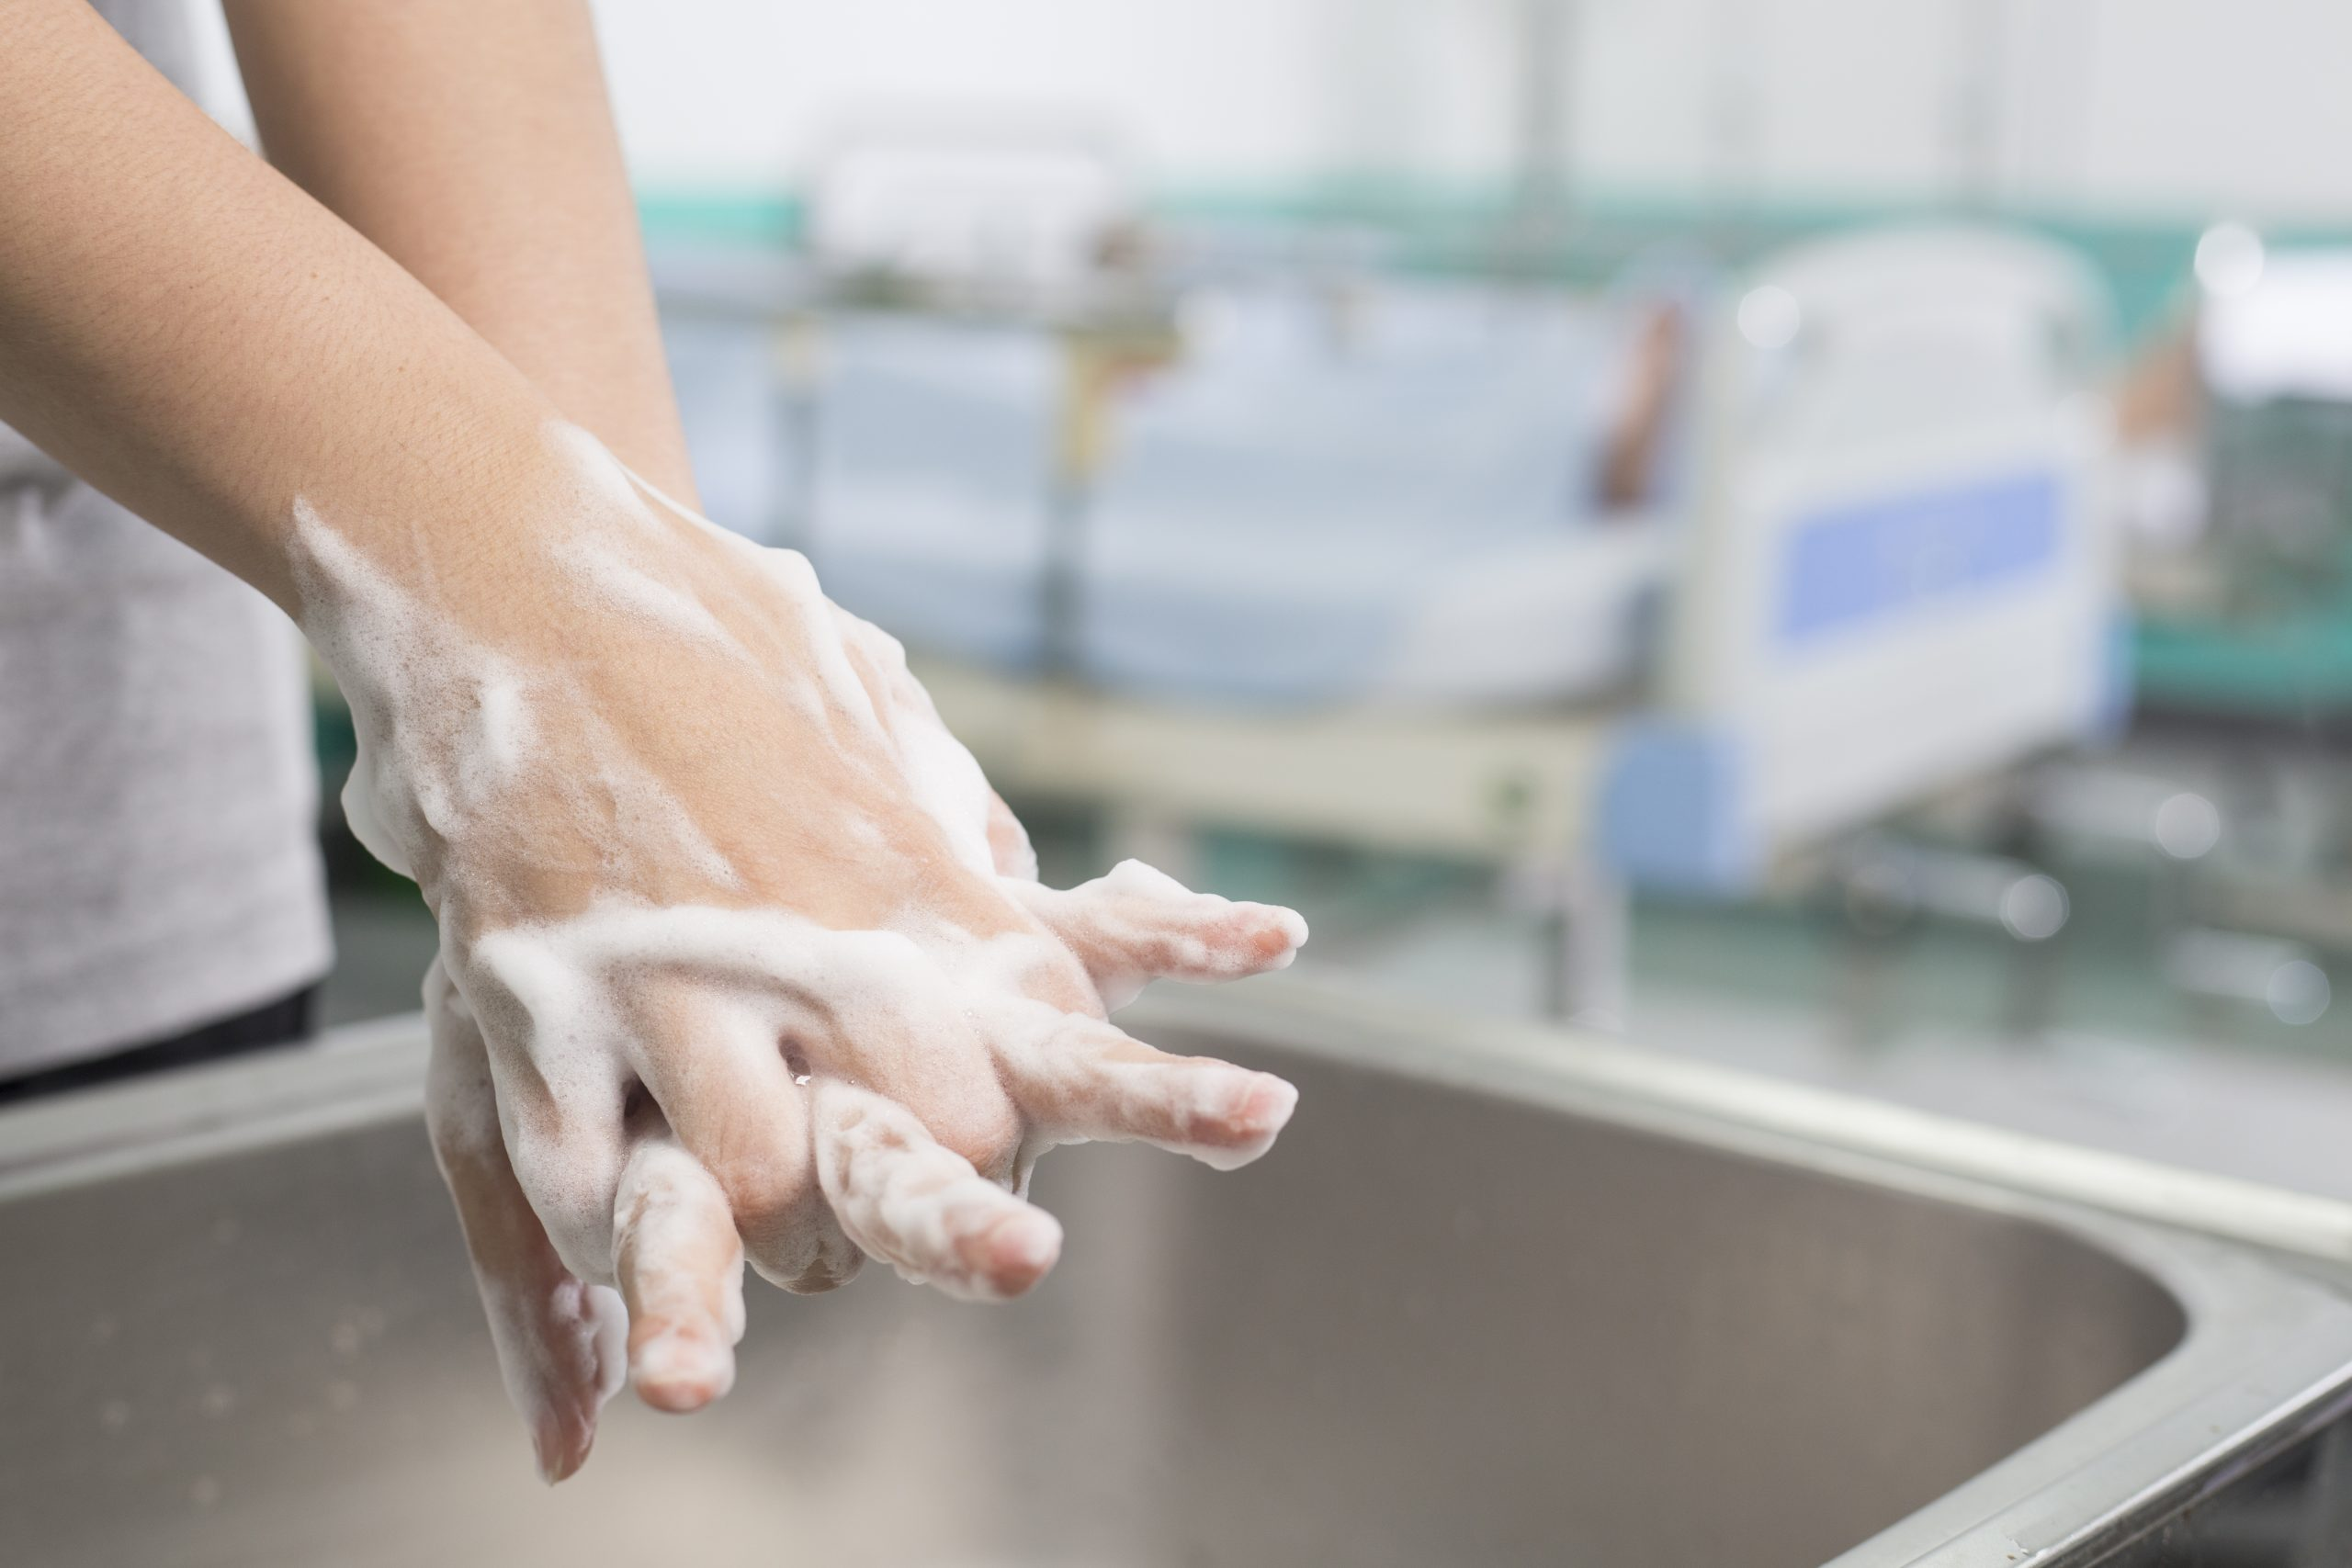 aged care cleaning protocols